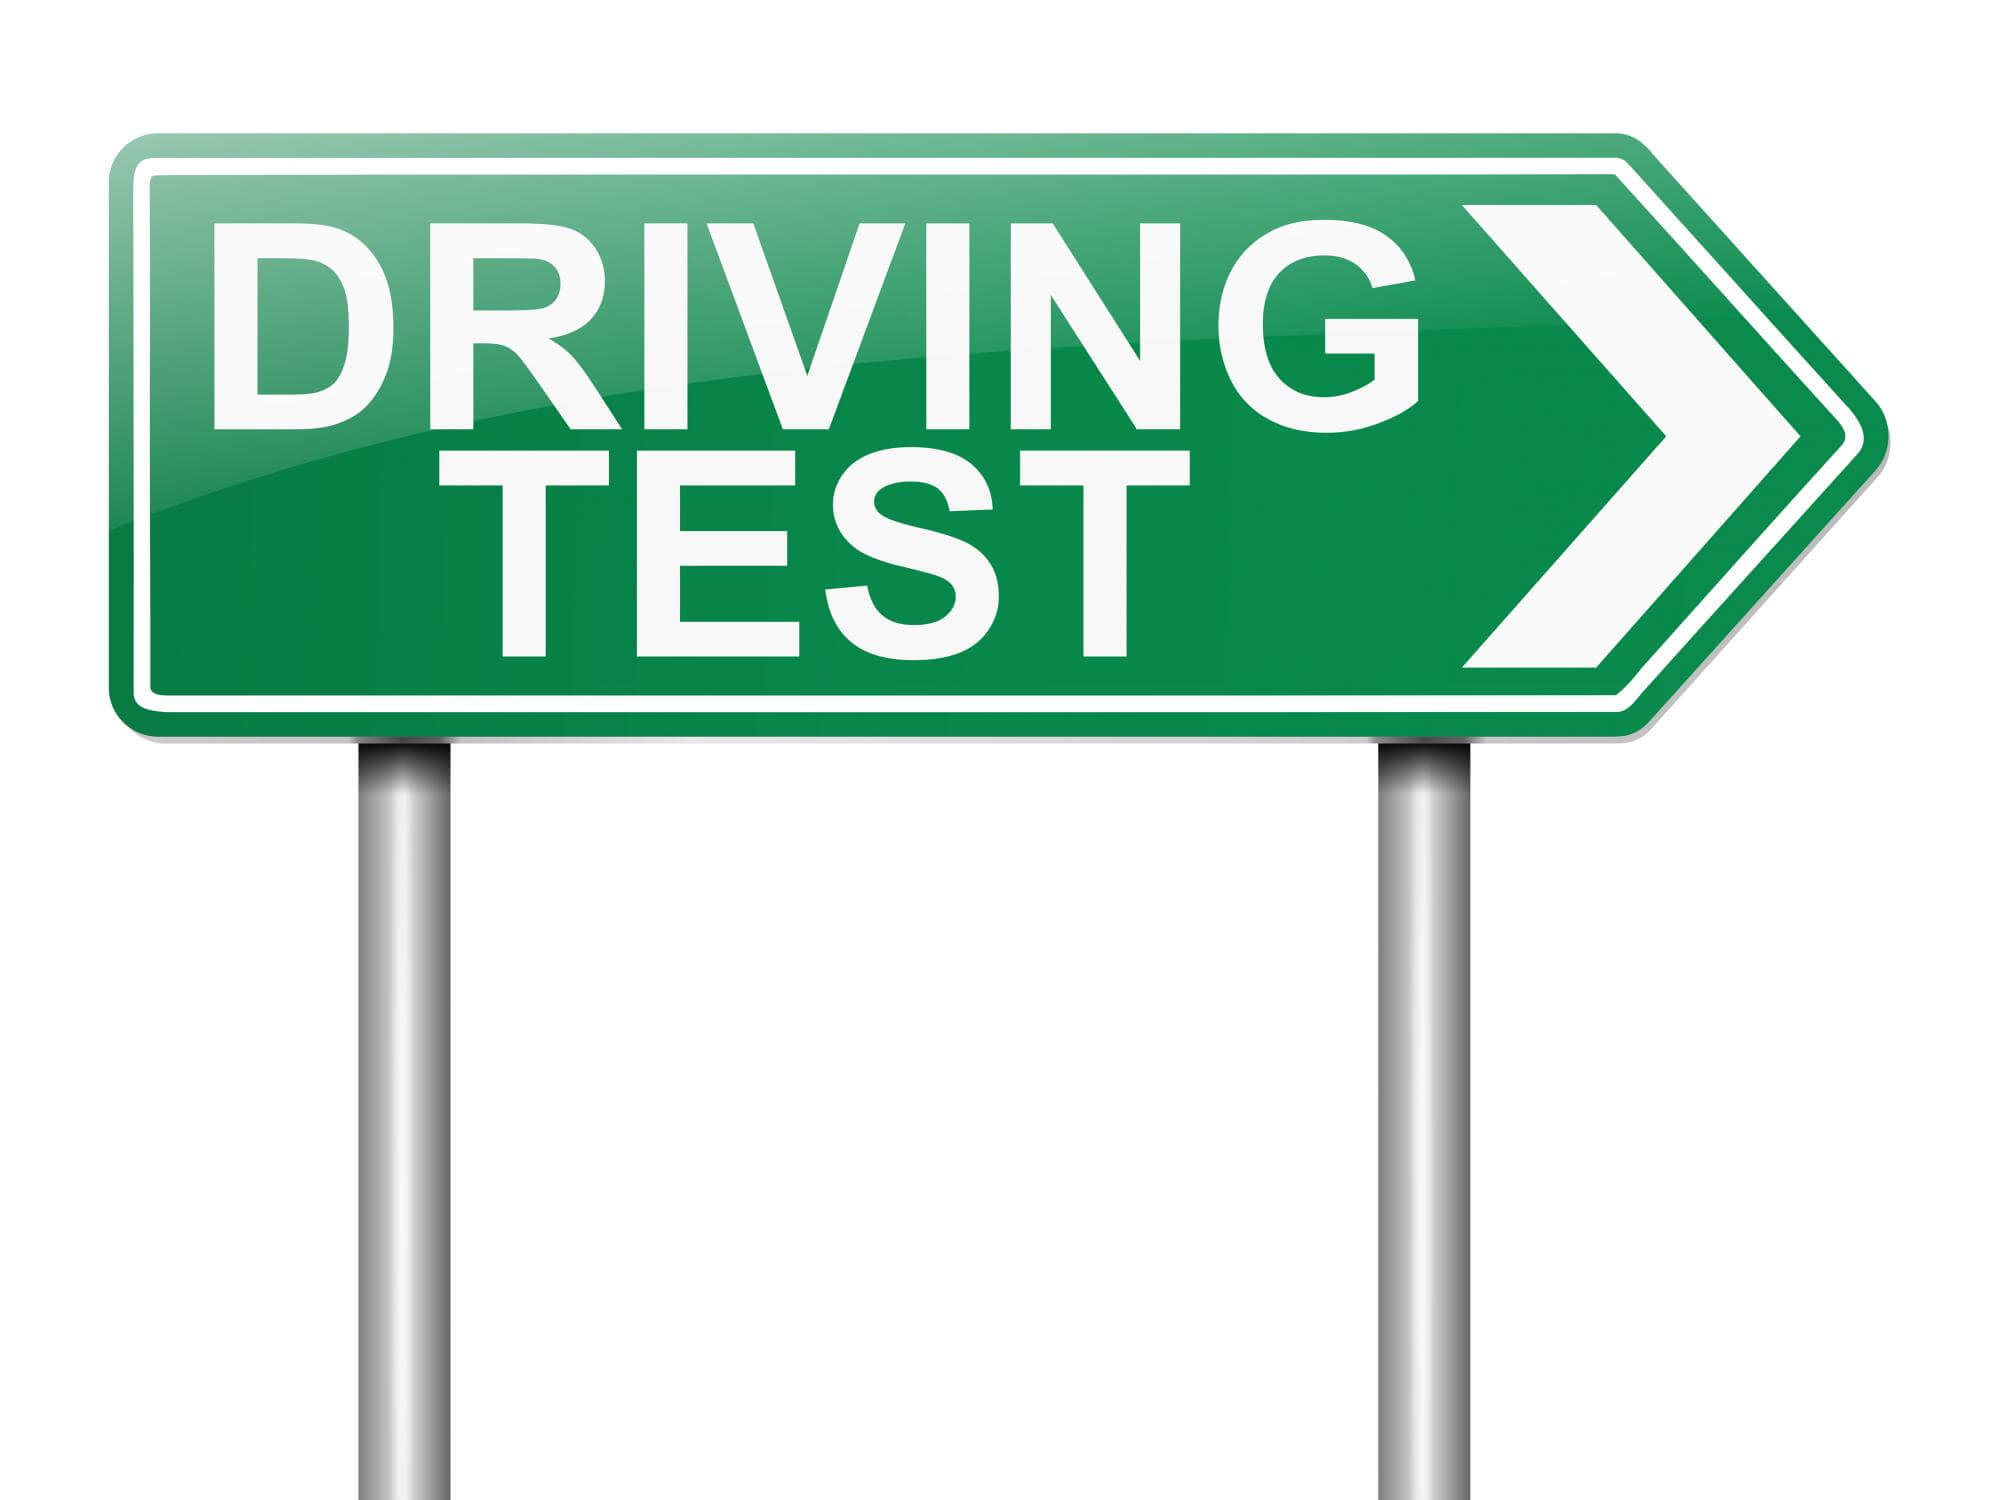 Elements of a Practical Driving Test - keendrivers